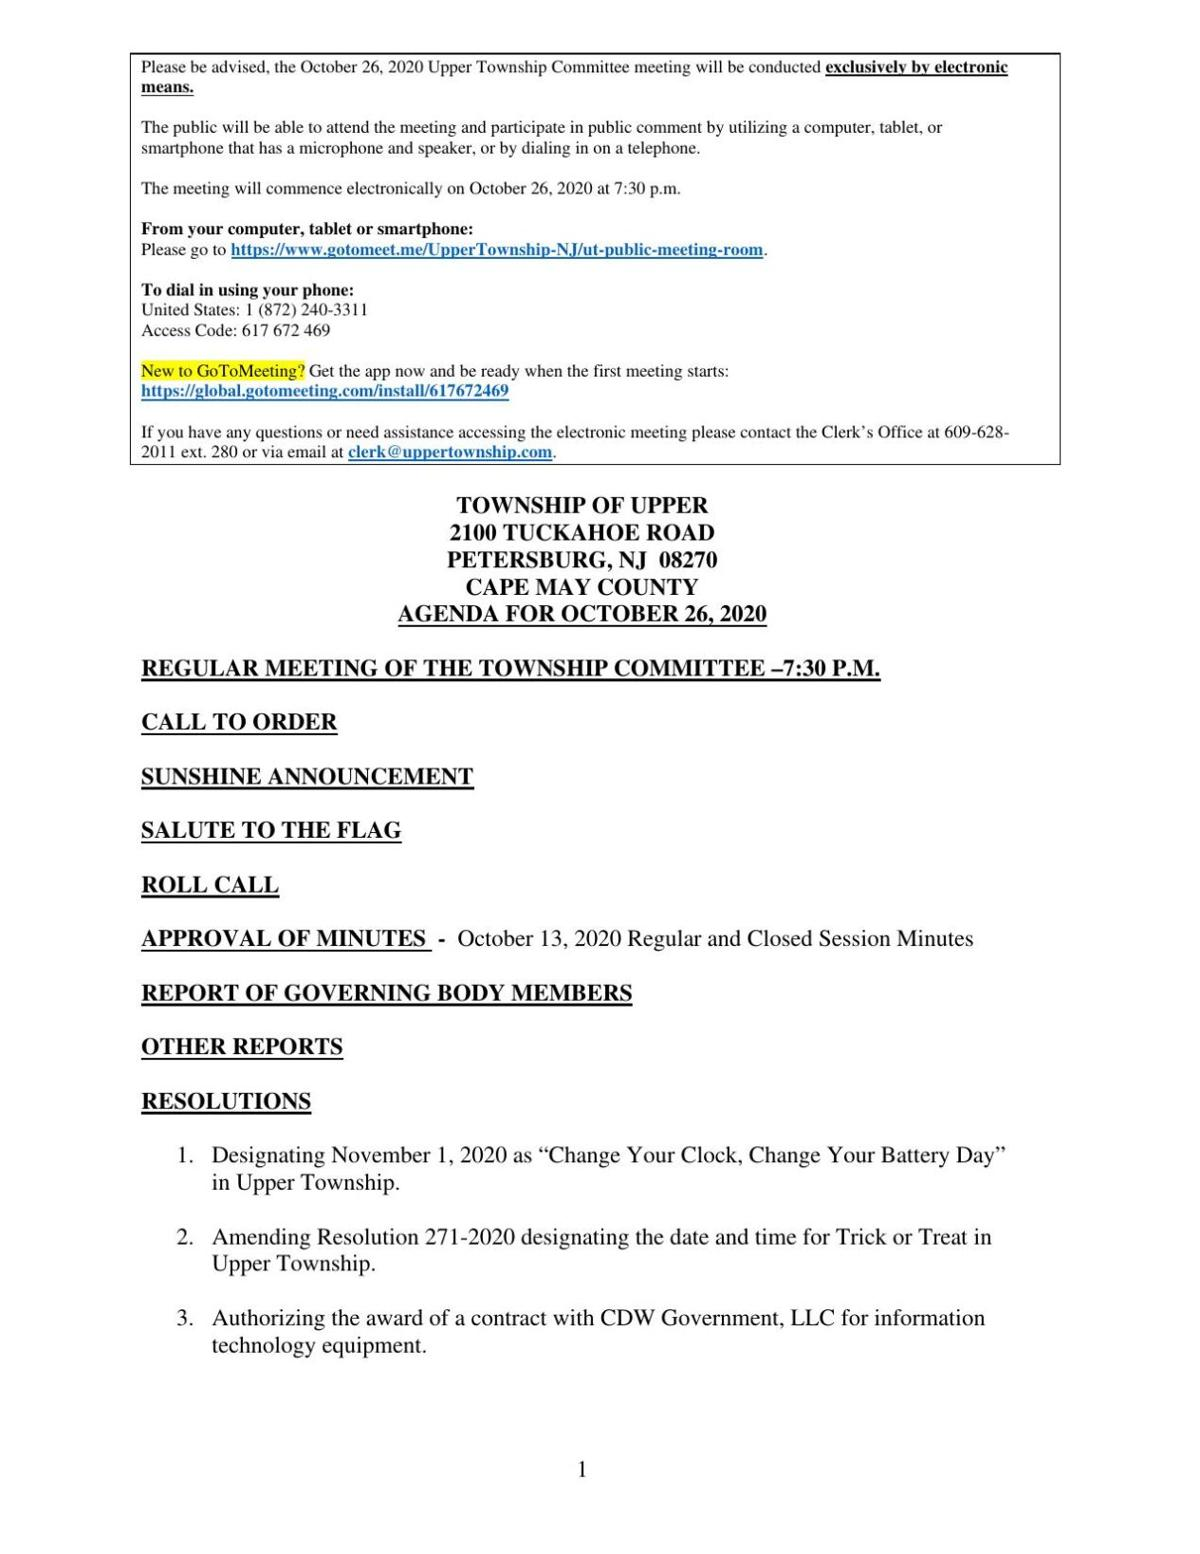 Upper Township Committee Meeting Agenda Oct. 26, 2020